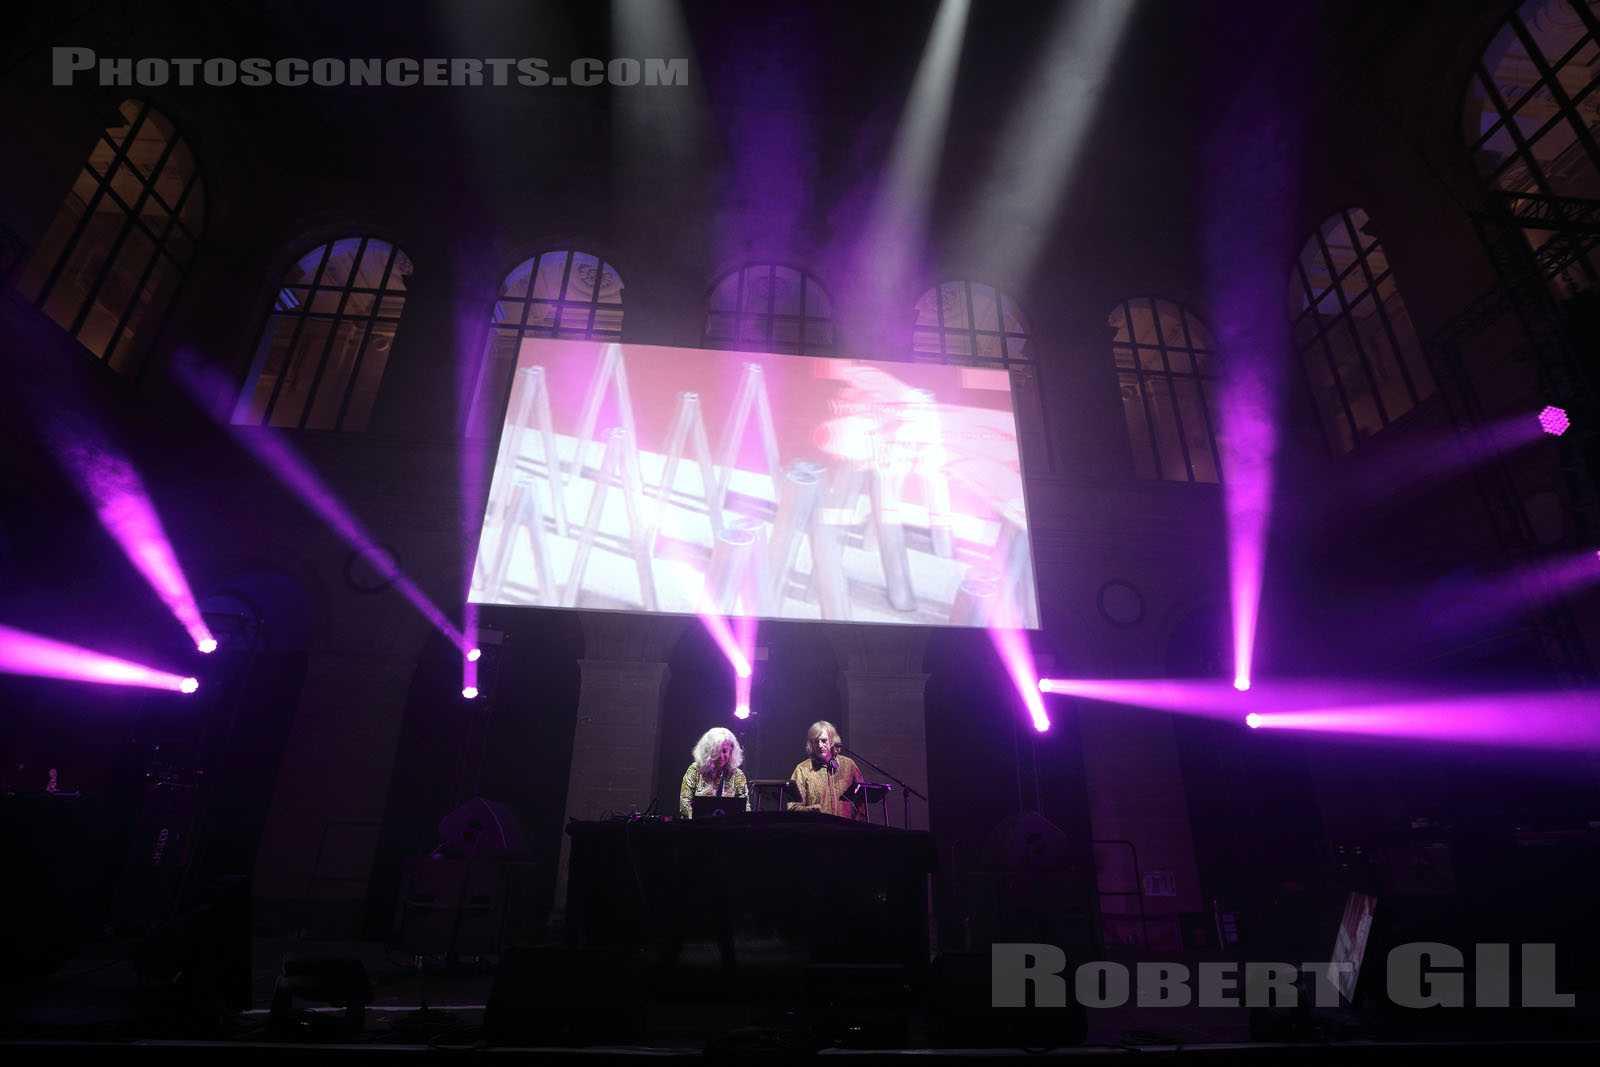 MATT BLACK - 2019-04-21 - PARIS - Palais Brongniart - La Nef